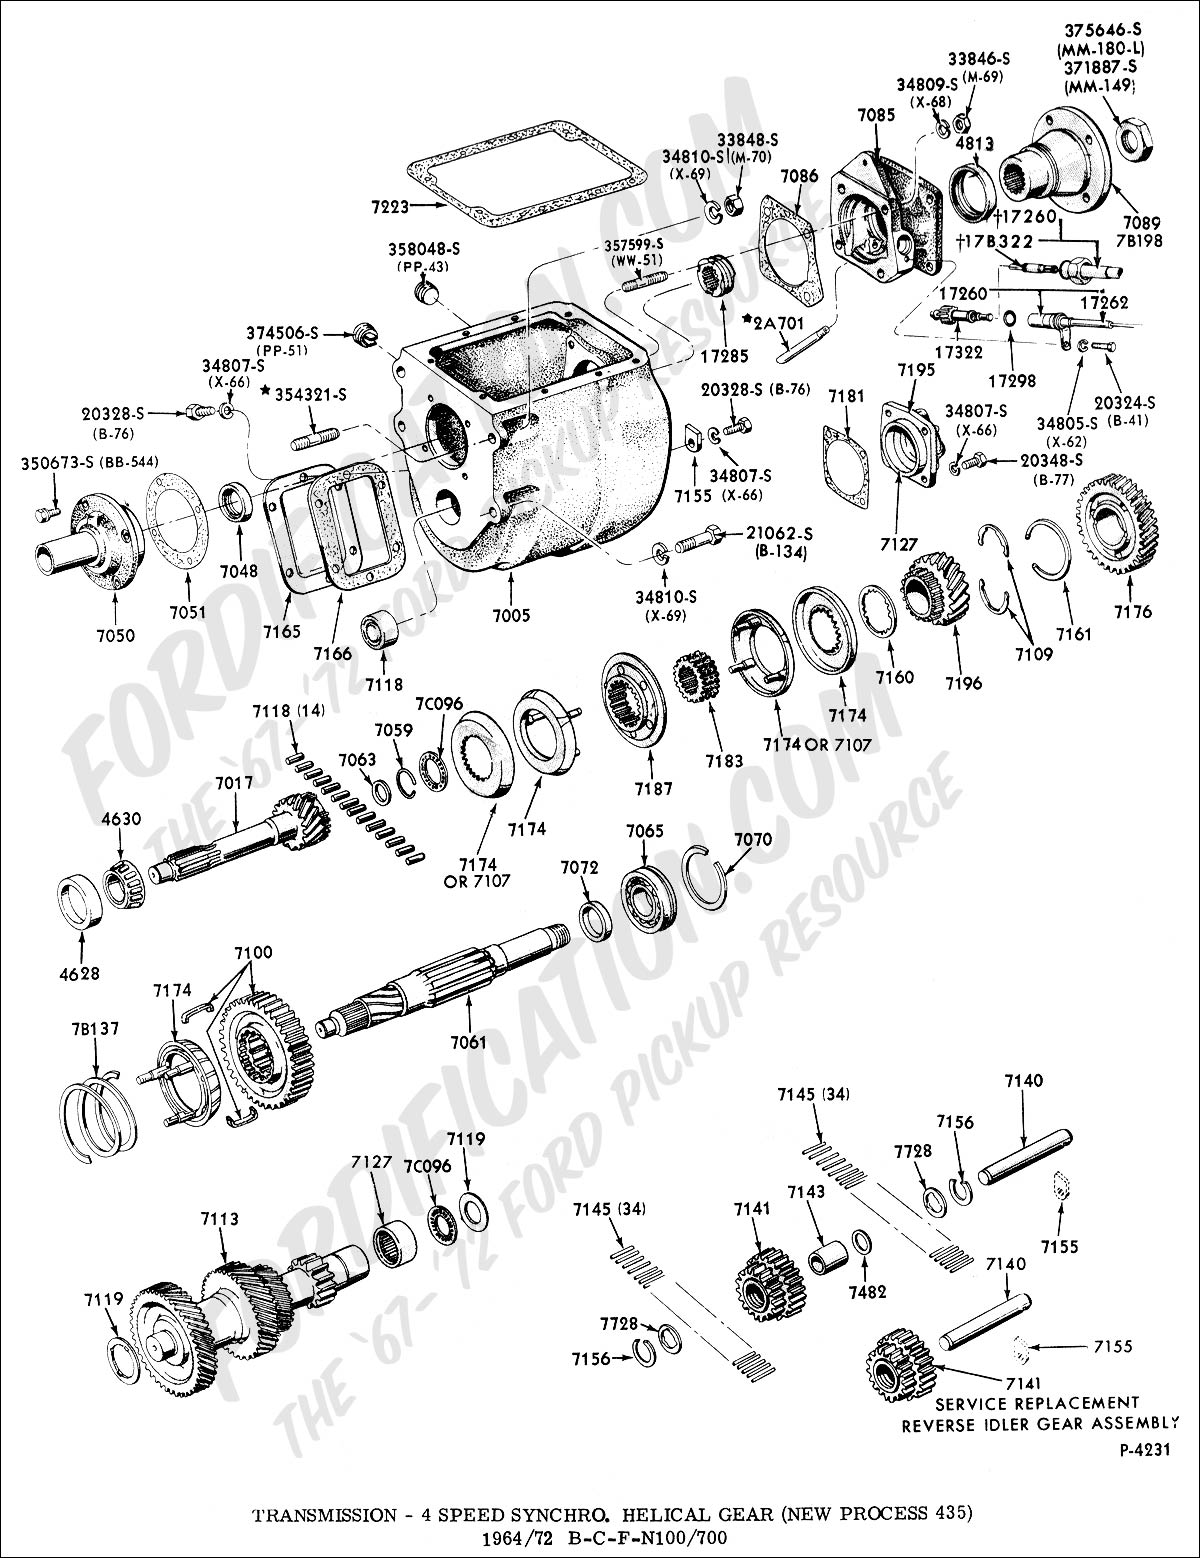 Np435 Transmission Part Diagram